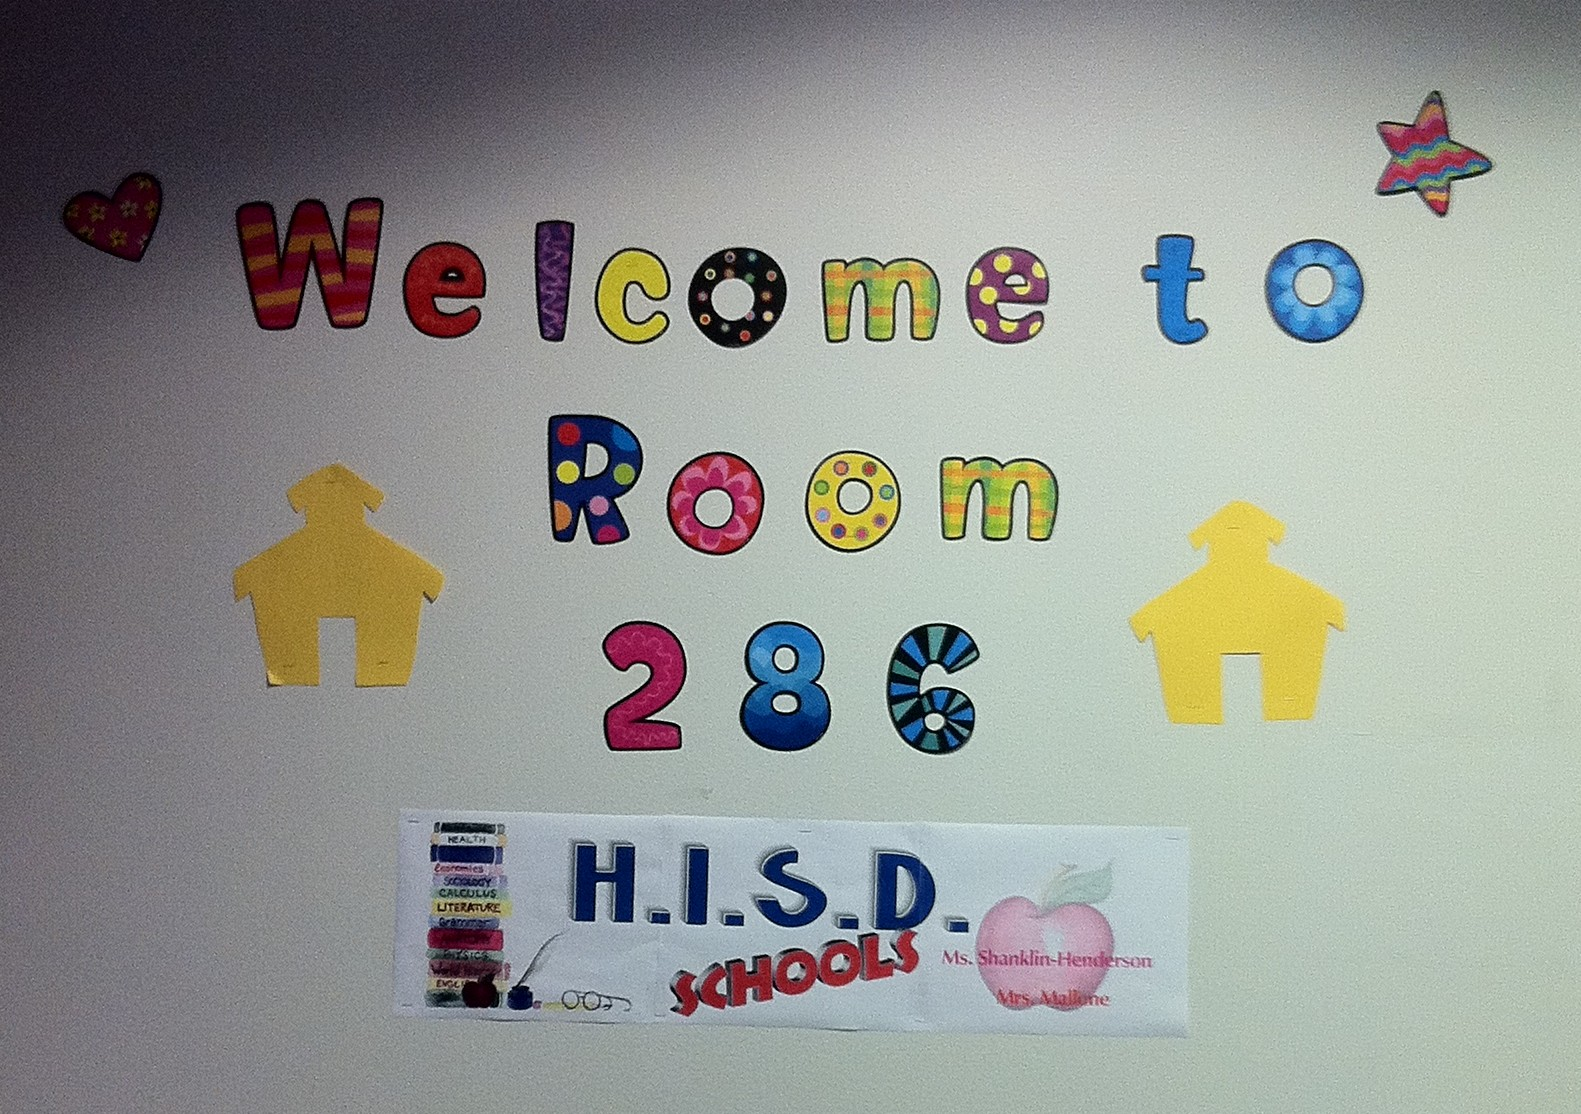 At Texas Children's Hospital, Room 286 is a place for learning and love.